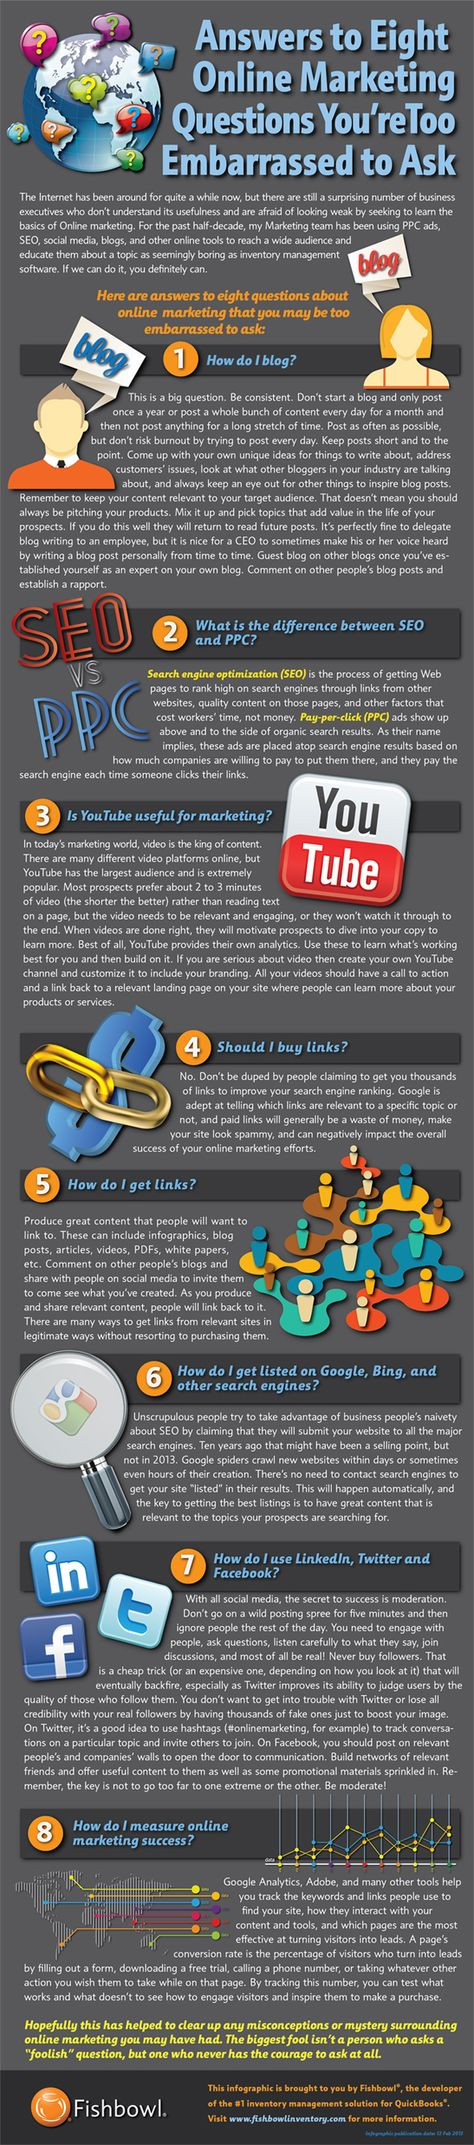 Answers to 8 Online Marketing Questions You Were Too Embarrassed To Ask (Article And Infographic)